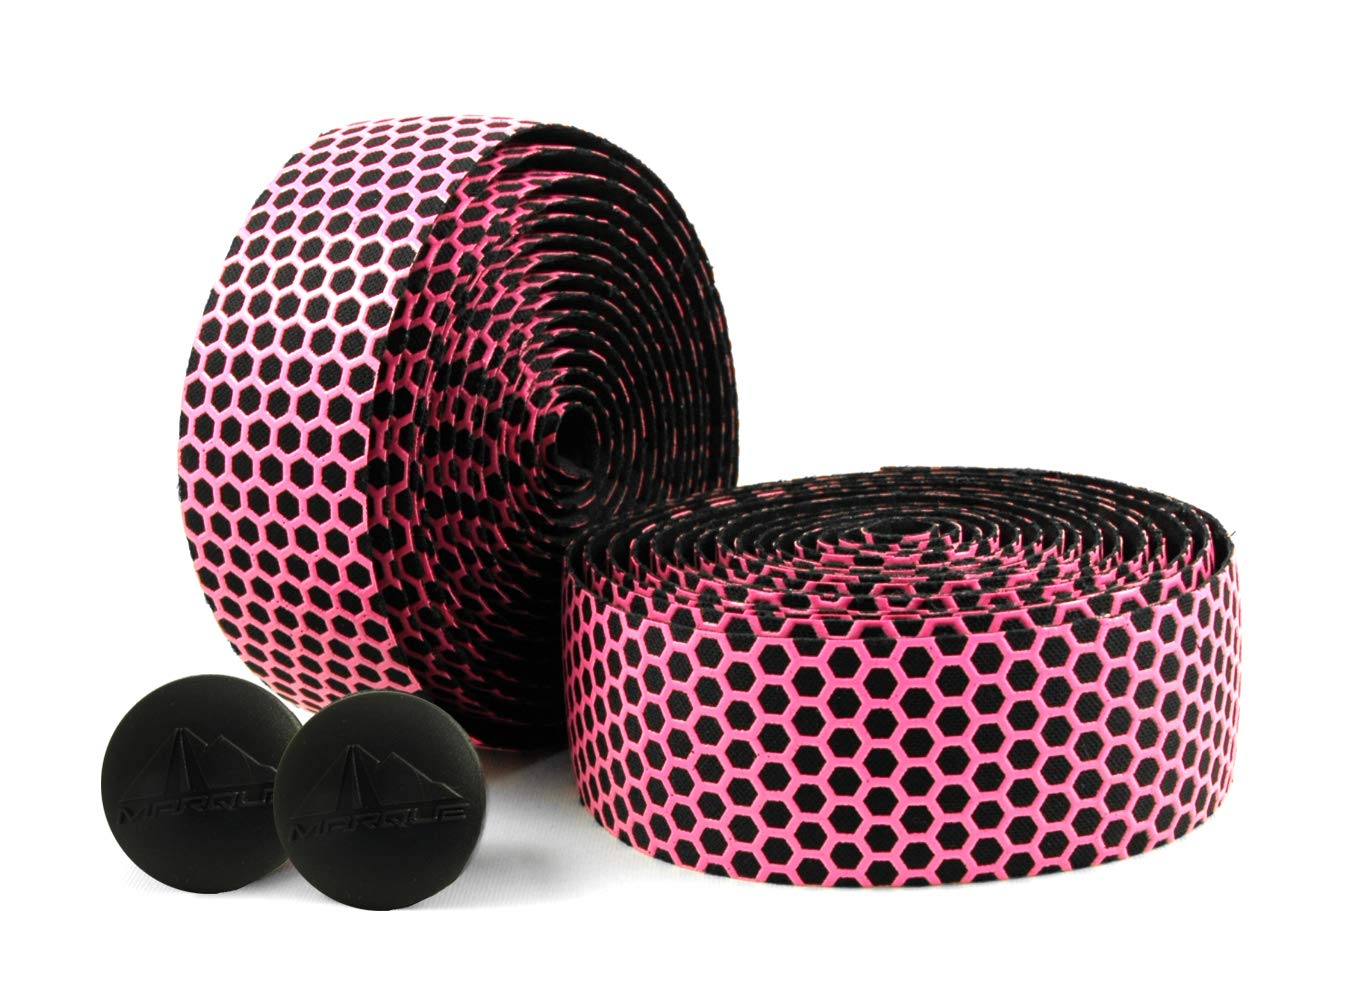 MARQUE Hex Grip Road Bike Handlebar Tape - 2PCS per Set (Pink) by MARQUE